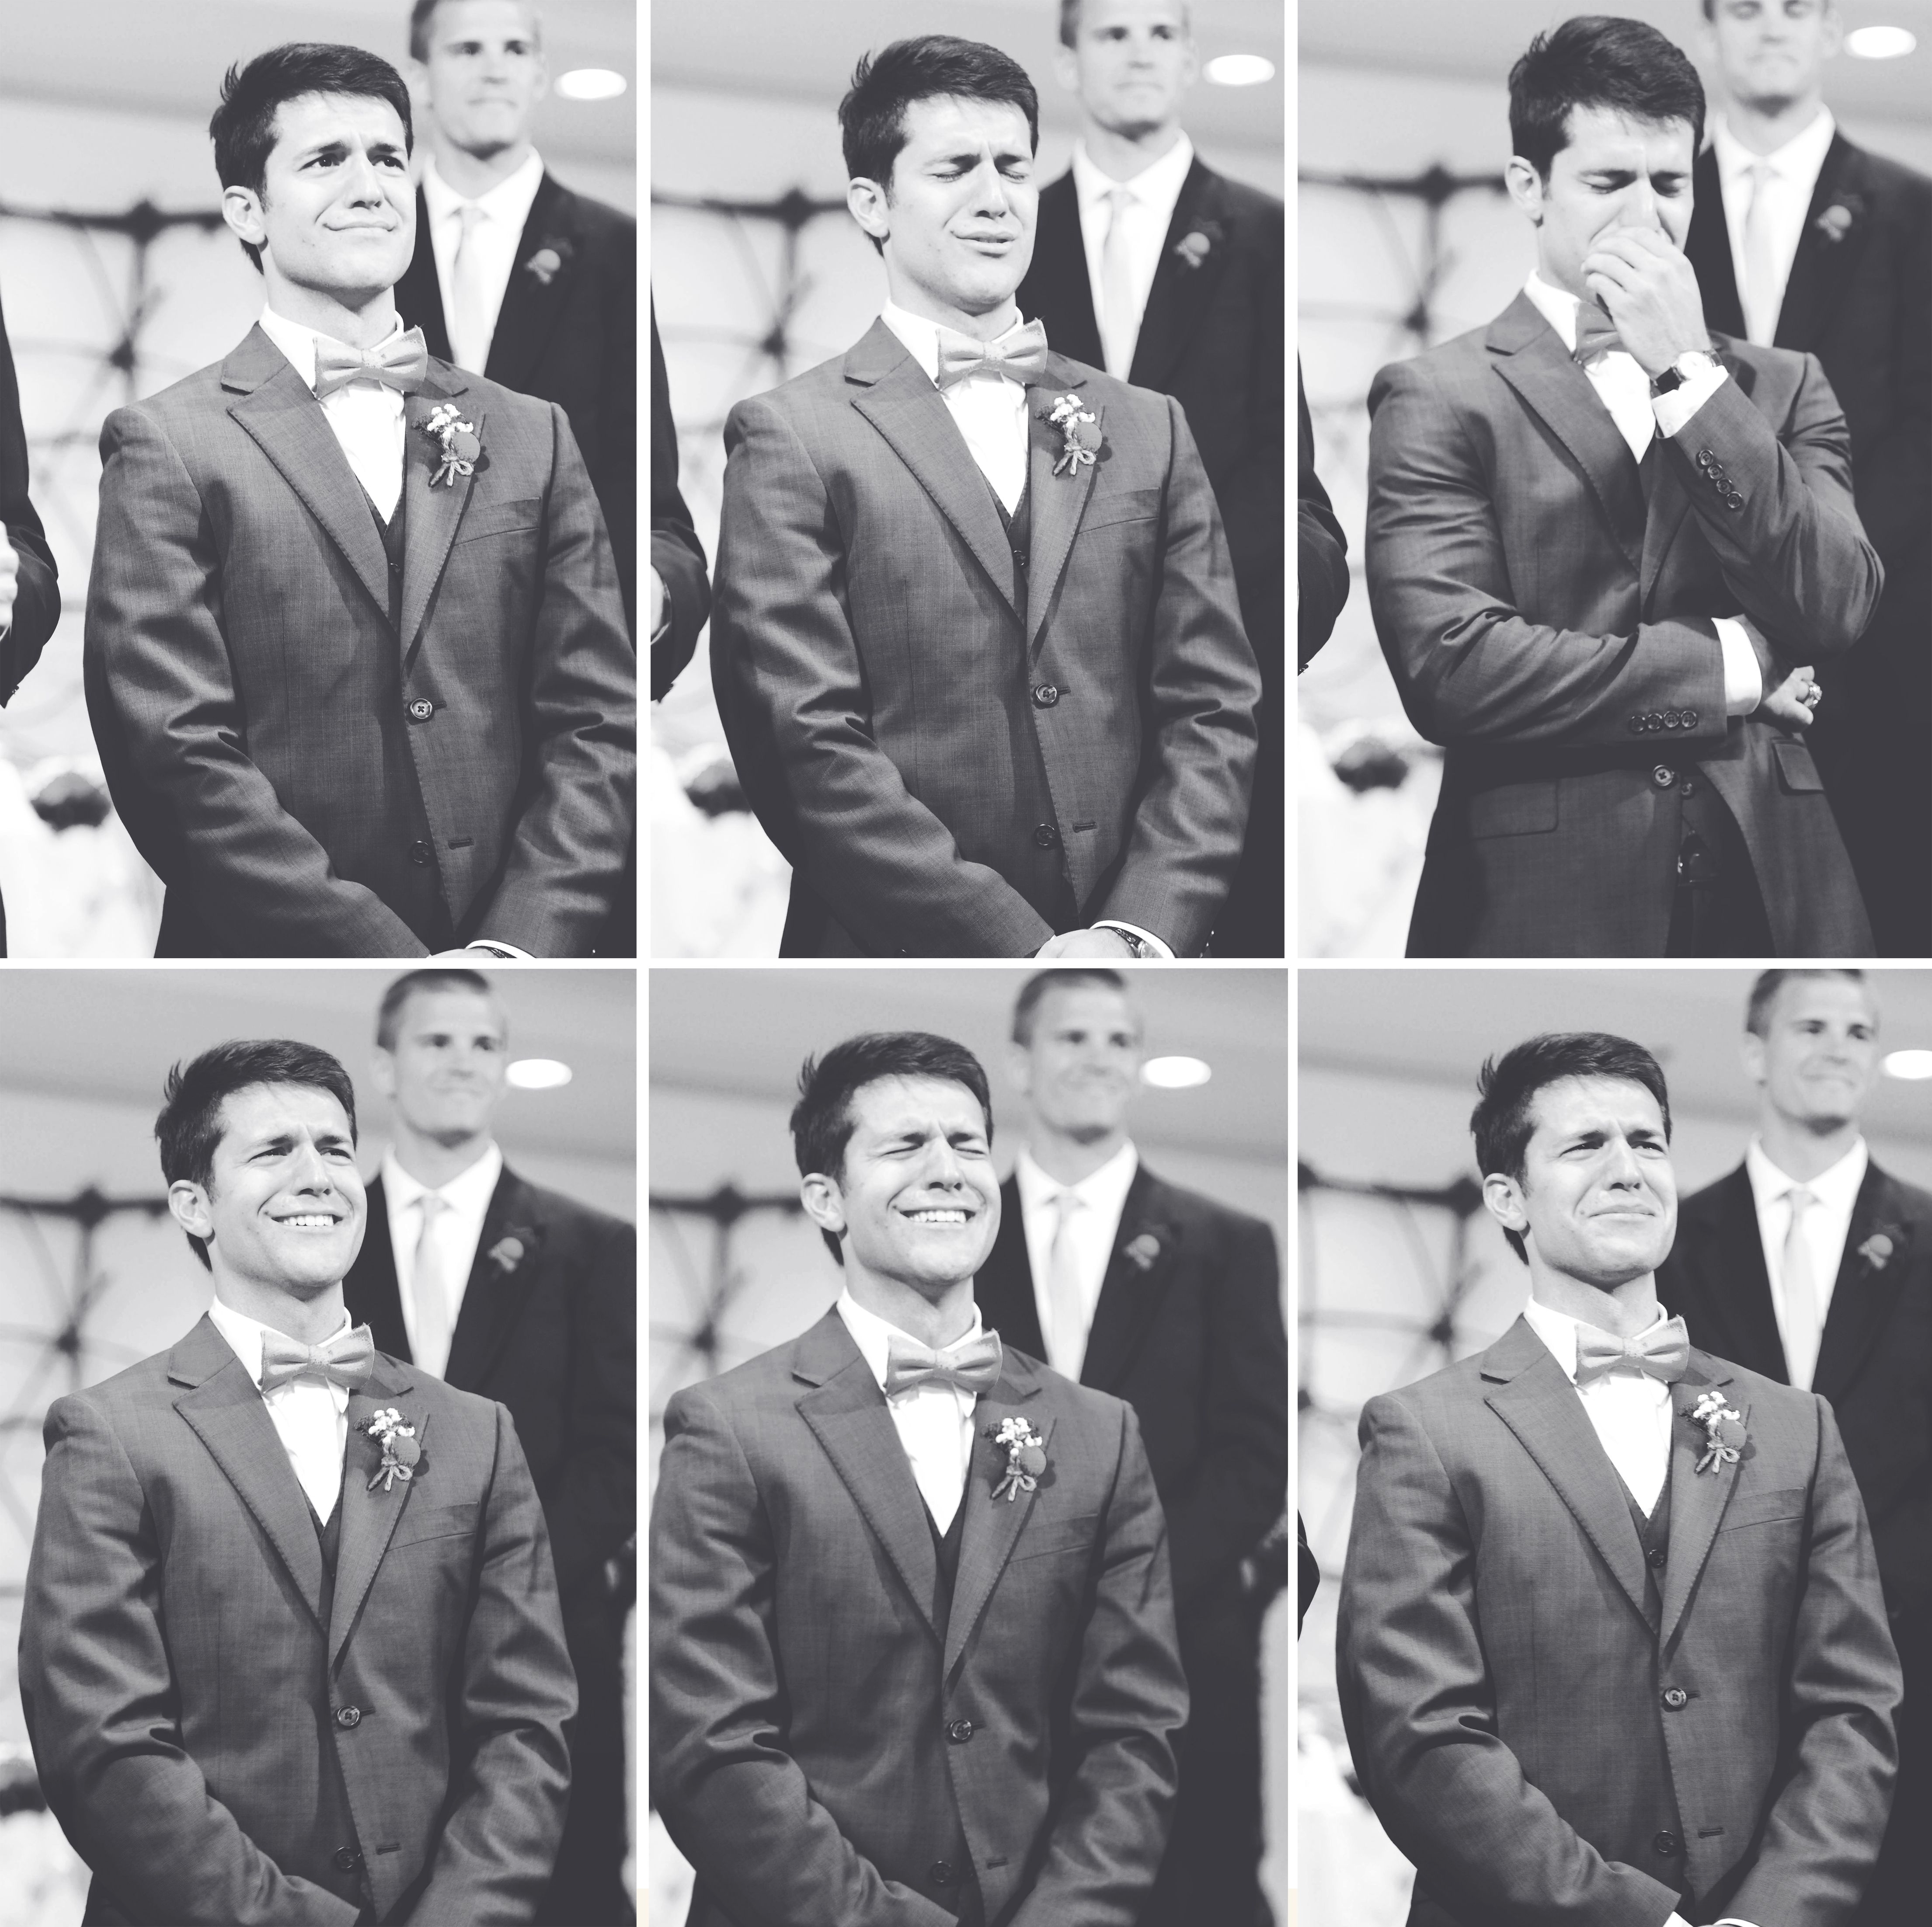 Grooms Are Upping Their Games Bride Cries As The Groom: The Groom Seeing The Bride For The First Time